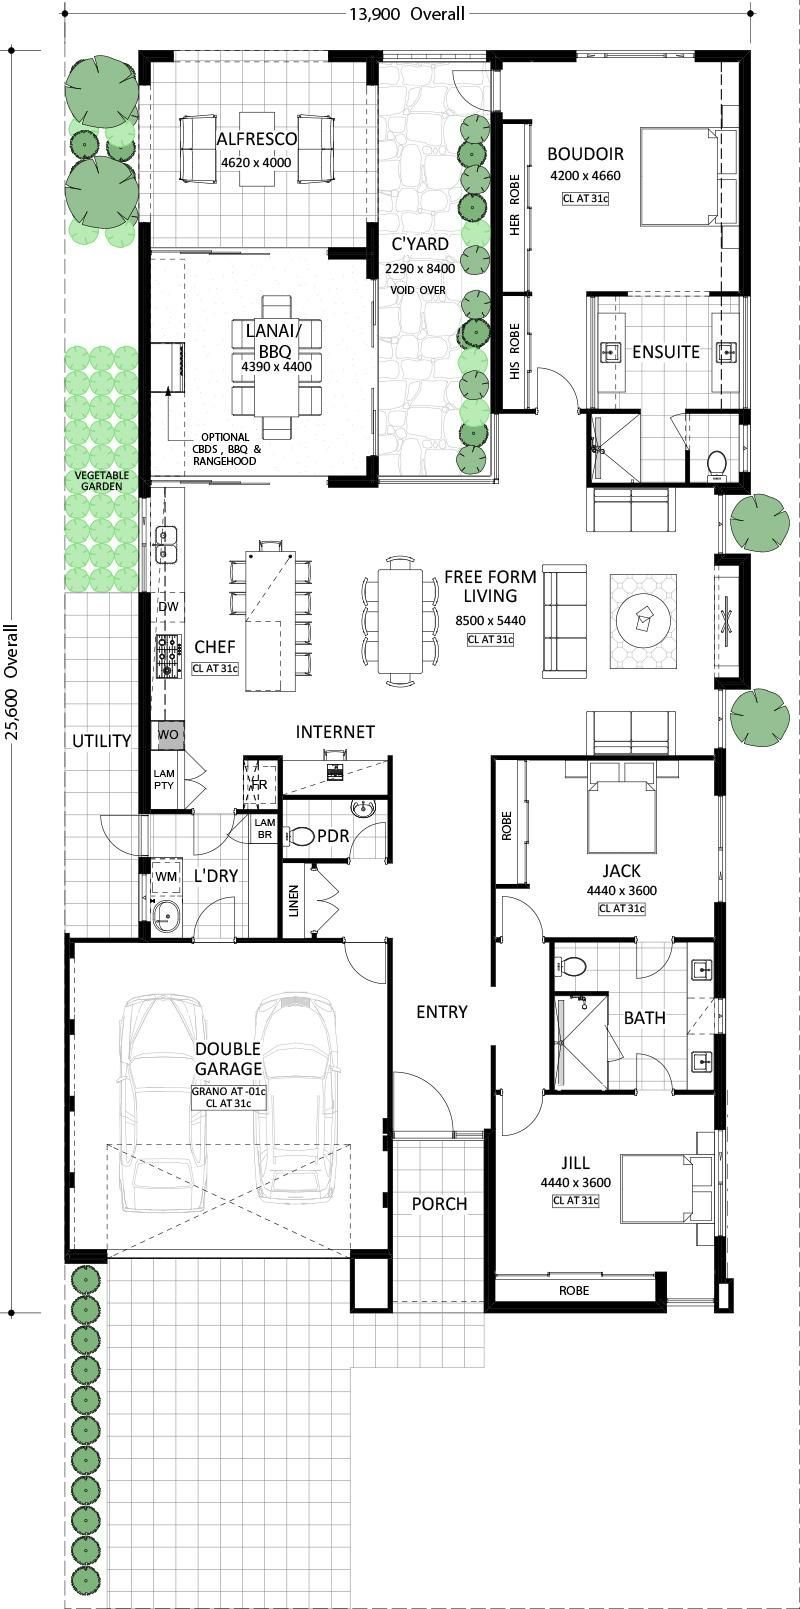 Yuma Residential Attitudes Doghouseyuma House Plans Australia House Construction Plan Courtyard House Plans